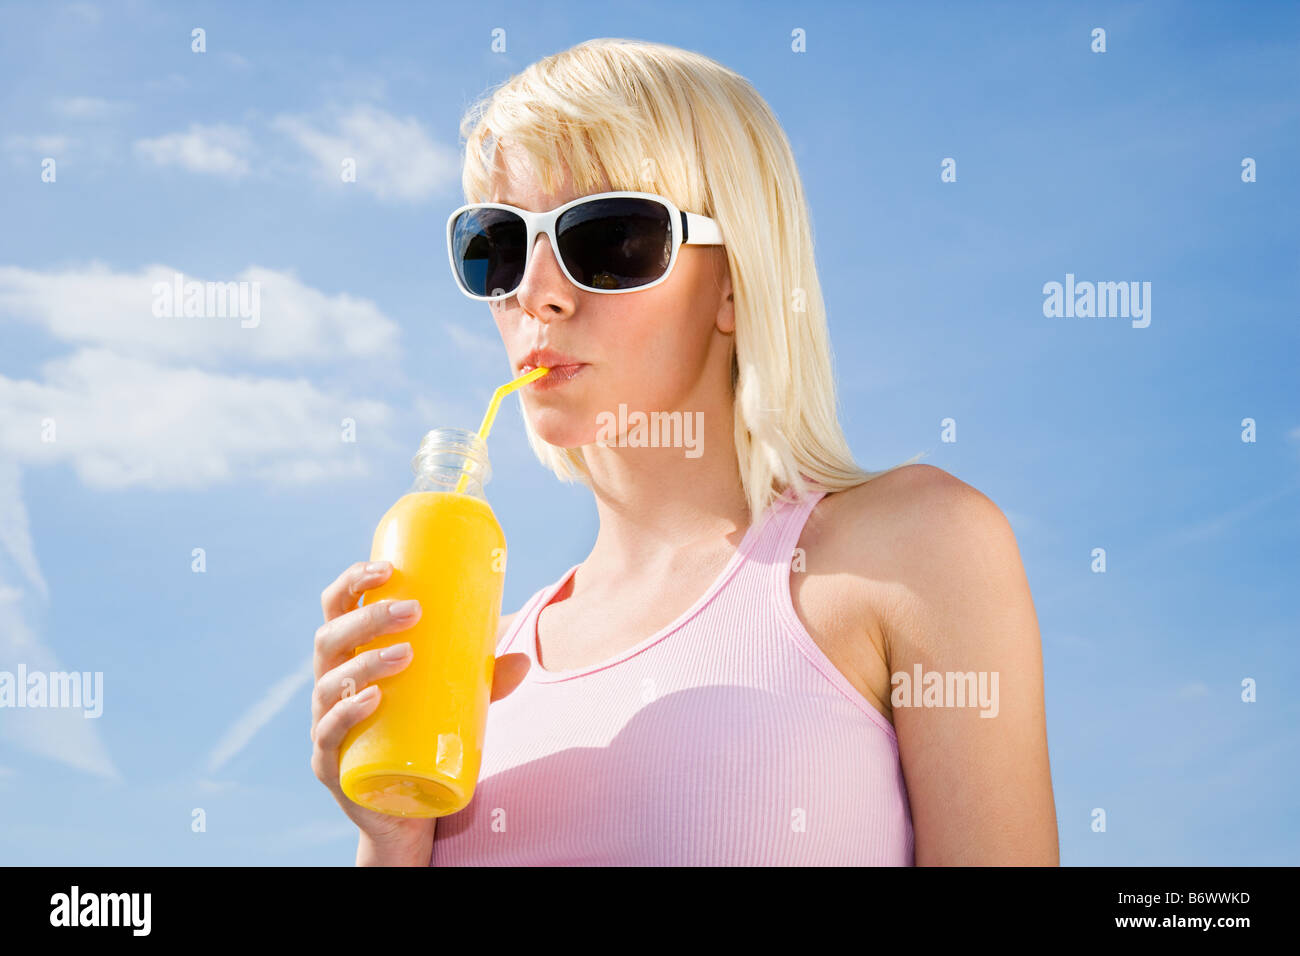 Woman drinking orange juice - Stock Image